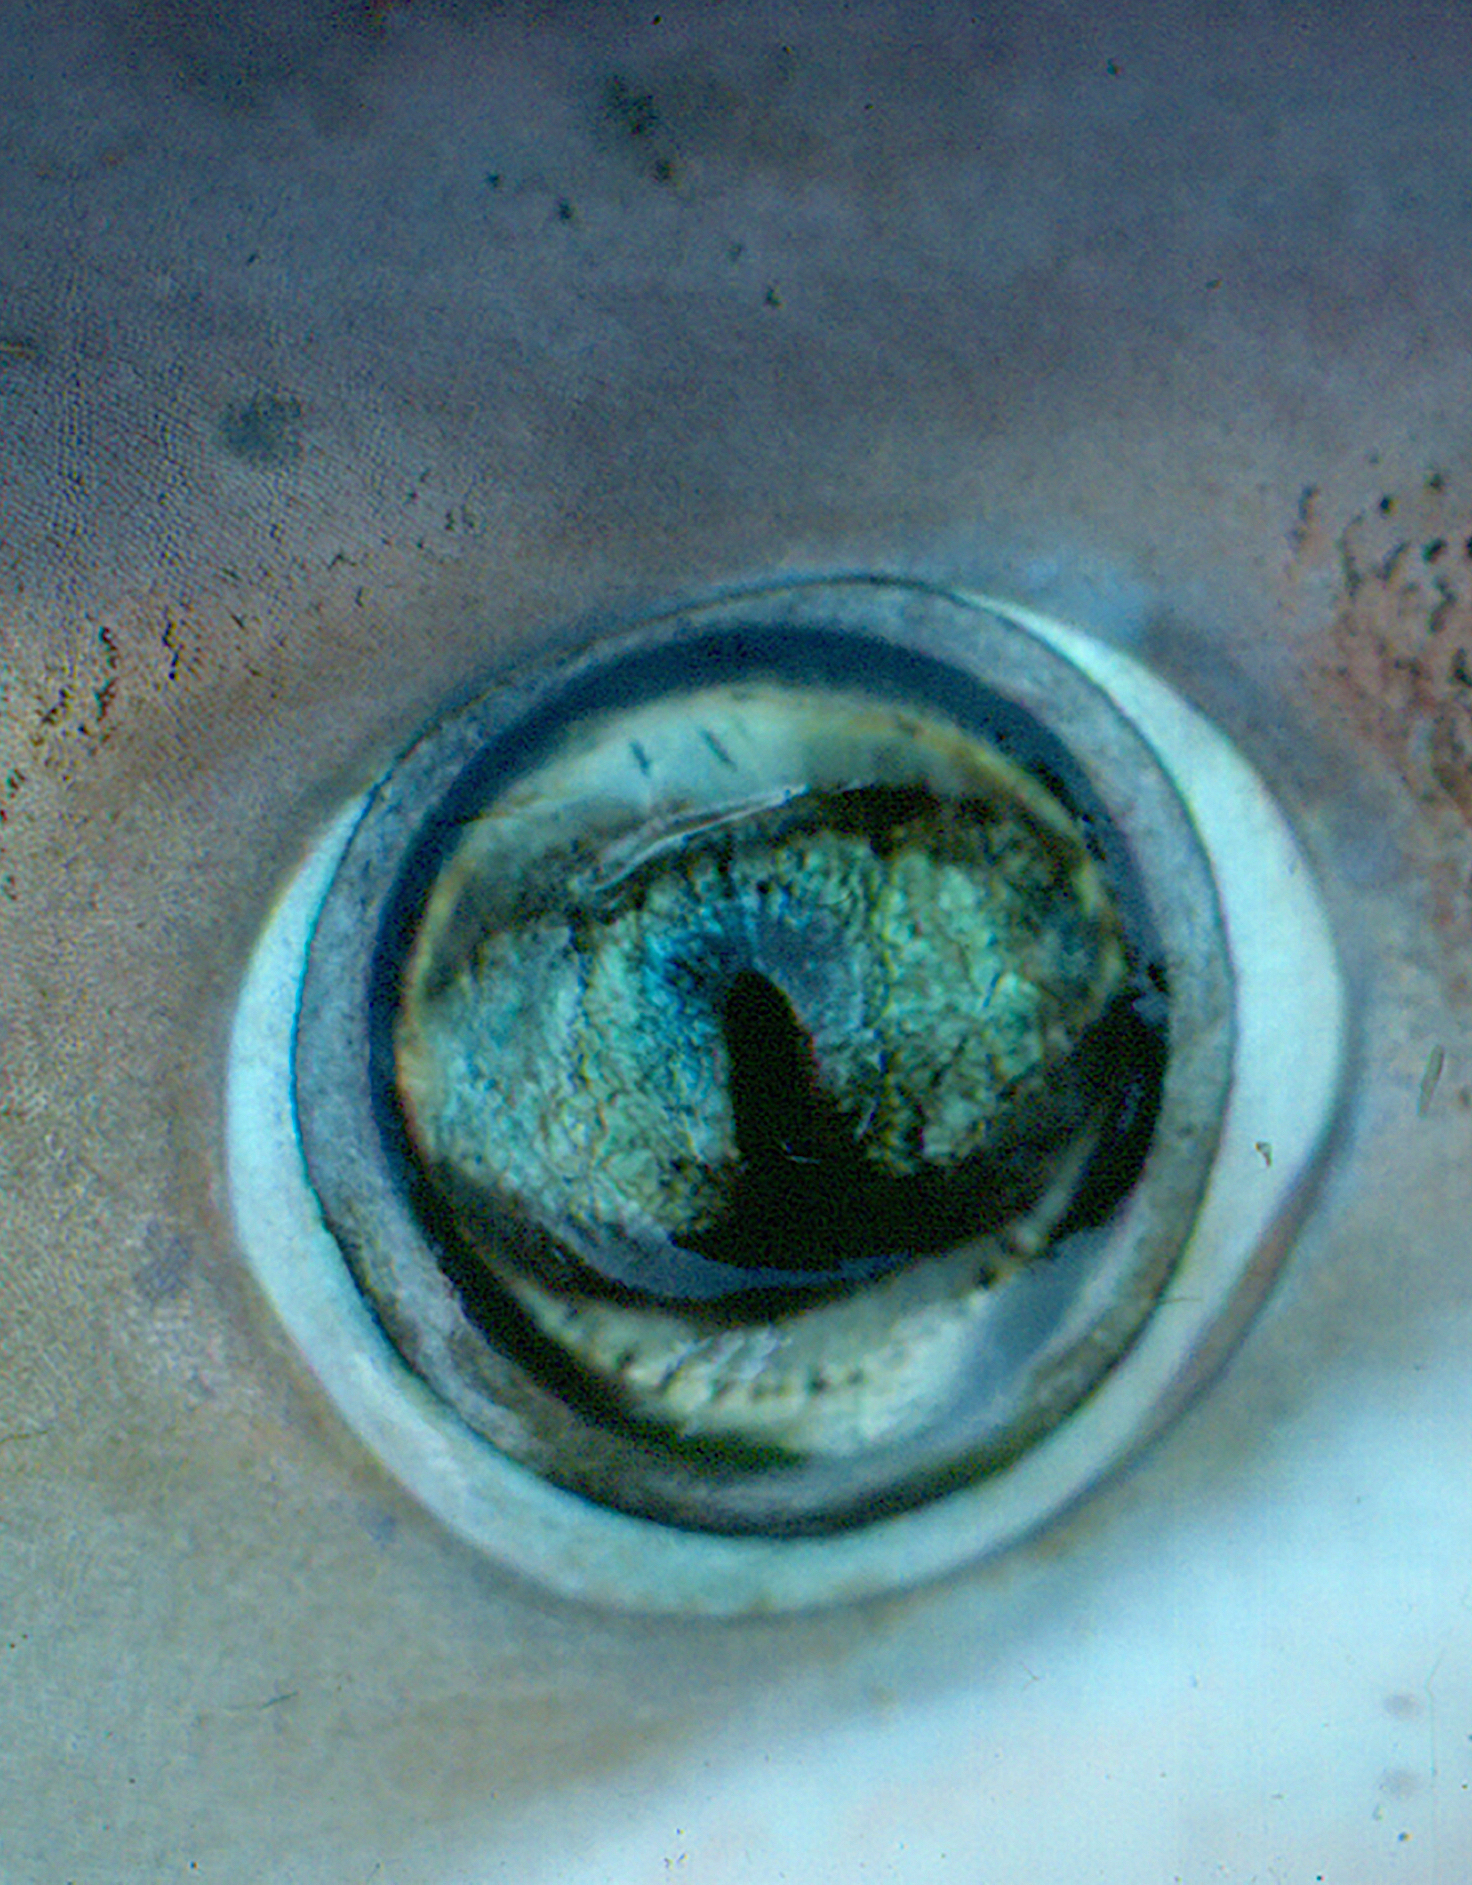 The eye of a night shark, courtesy of NEFSC/NOAA